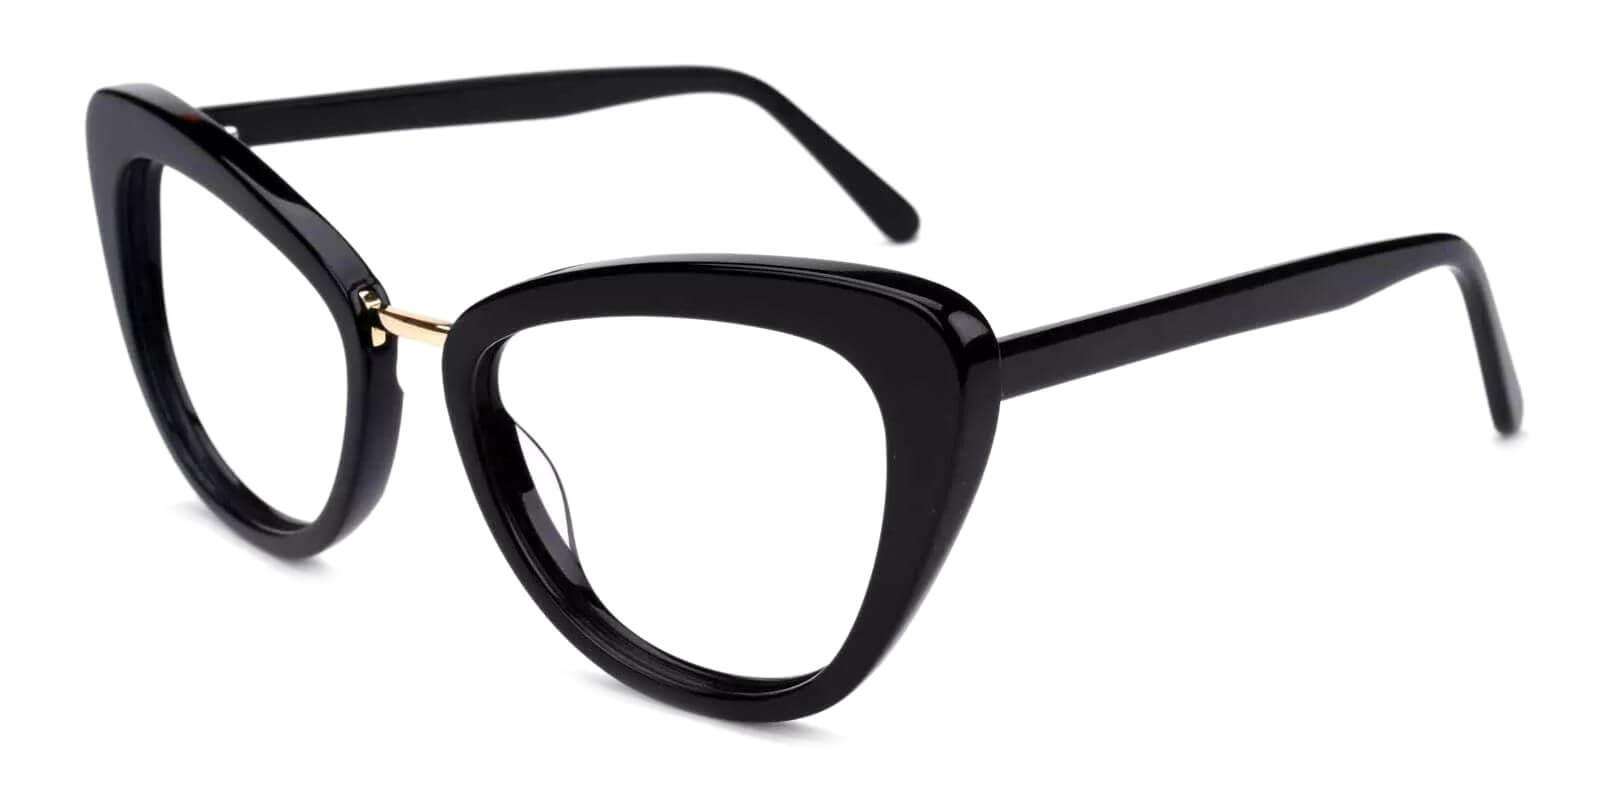 Lizzy Black Acetate Eyeglasses , Fashion , SpringHinges , UniversalBridgeFit Frames from ABBE Glasses